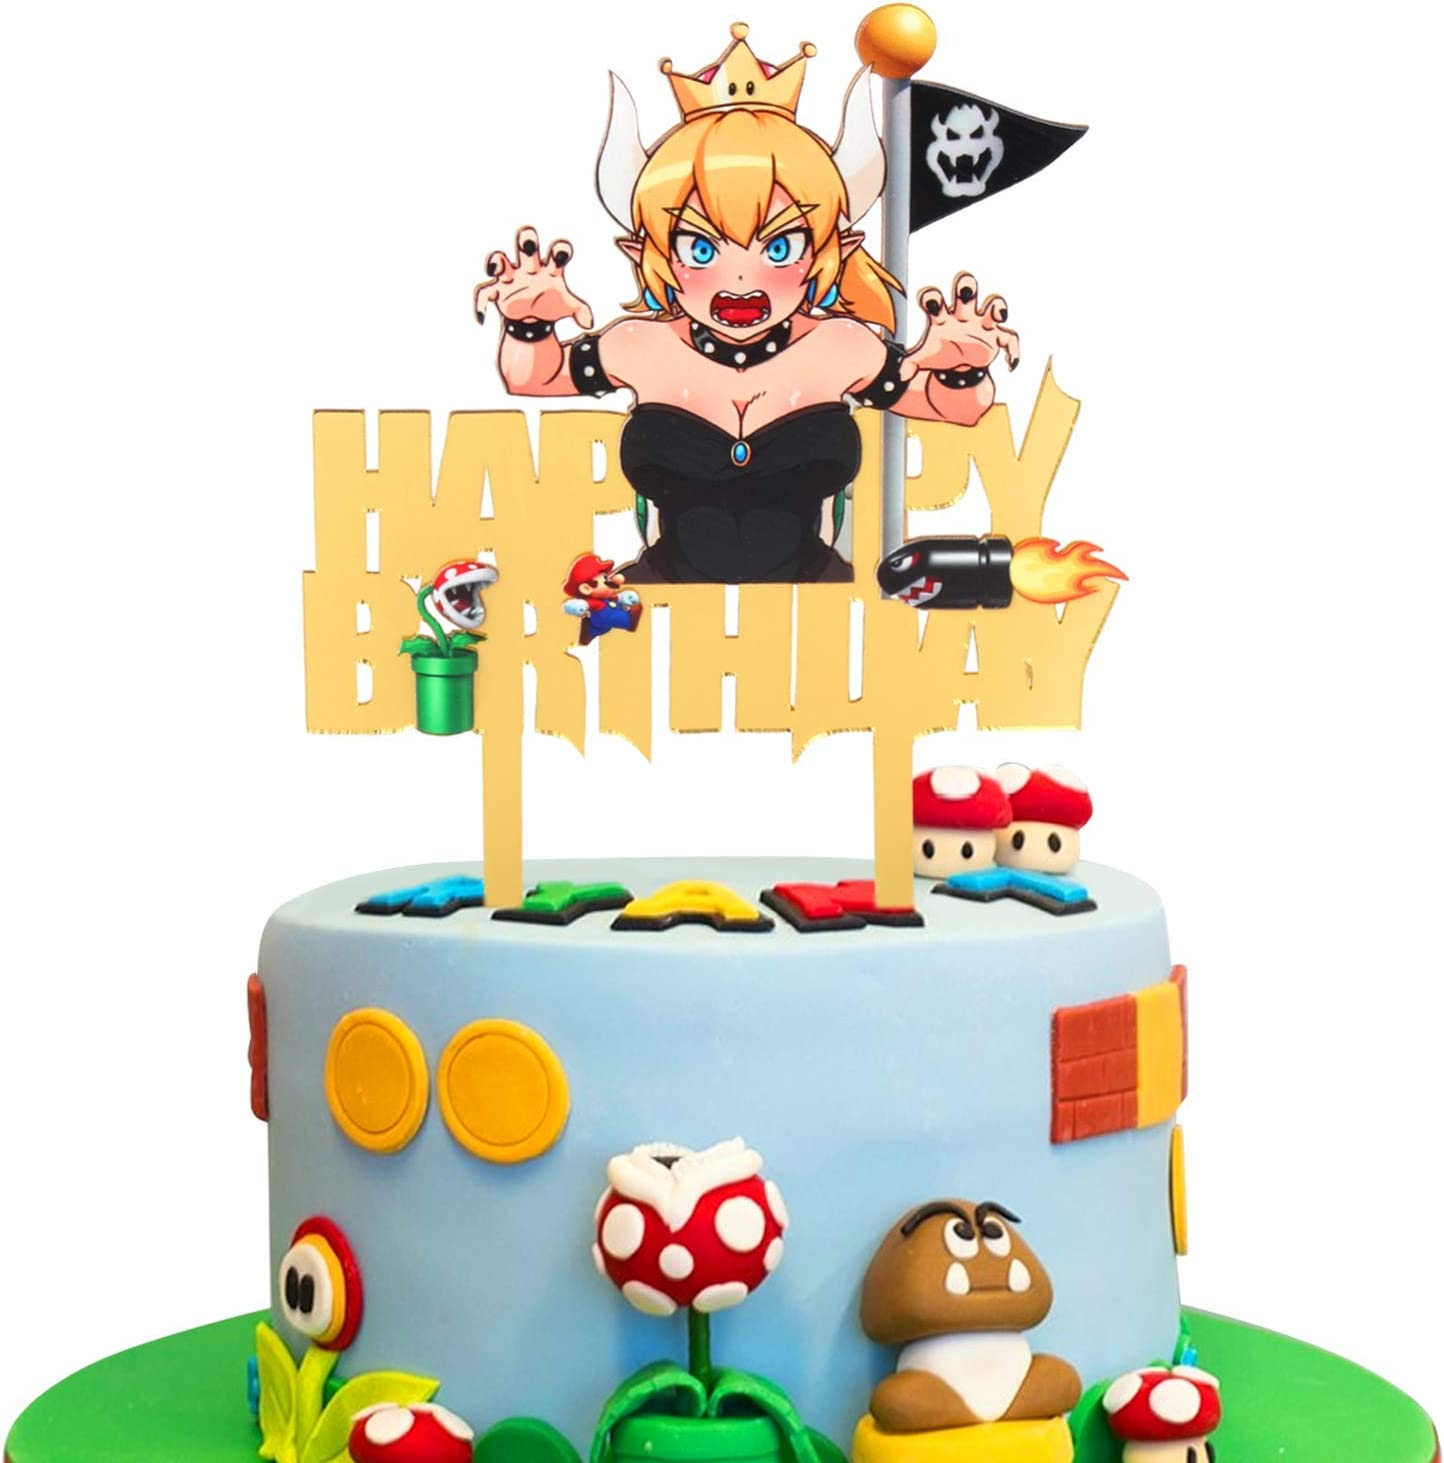 Amazon Com Cartoon Acrylic Bowsette Happy Birthday Cake Topper Video Gaming Theme Birthday Party Decoration Suppliers Home Kitchen